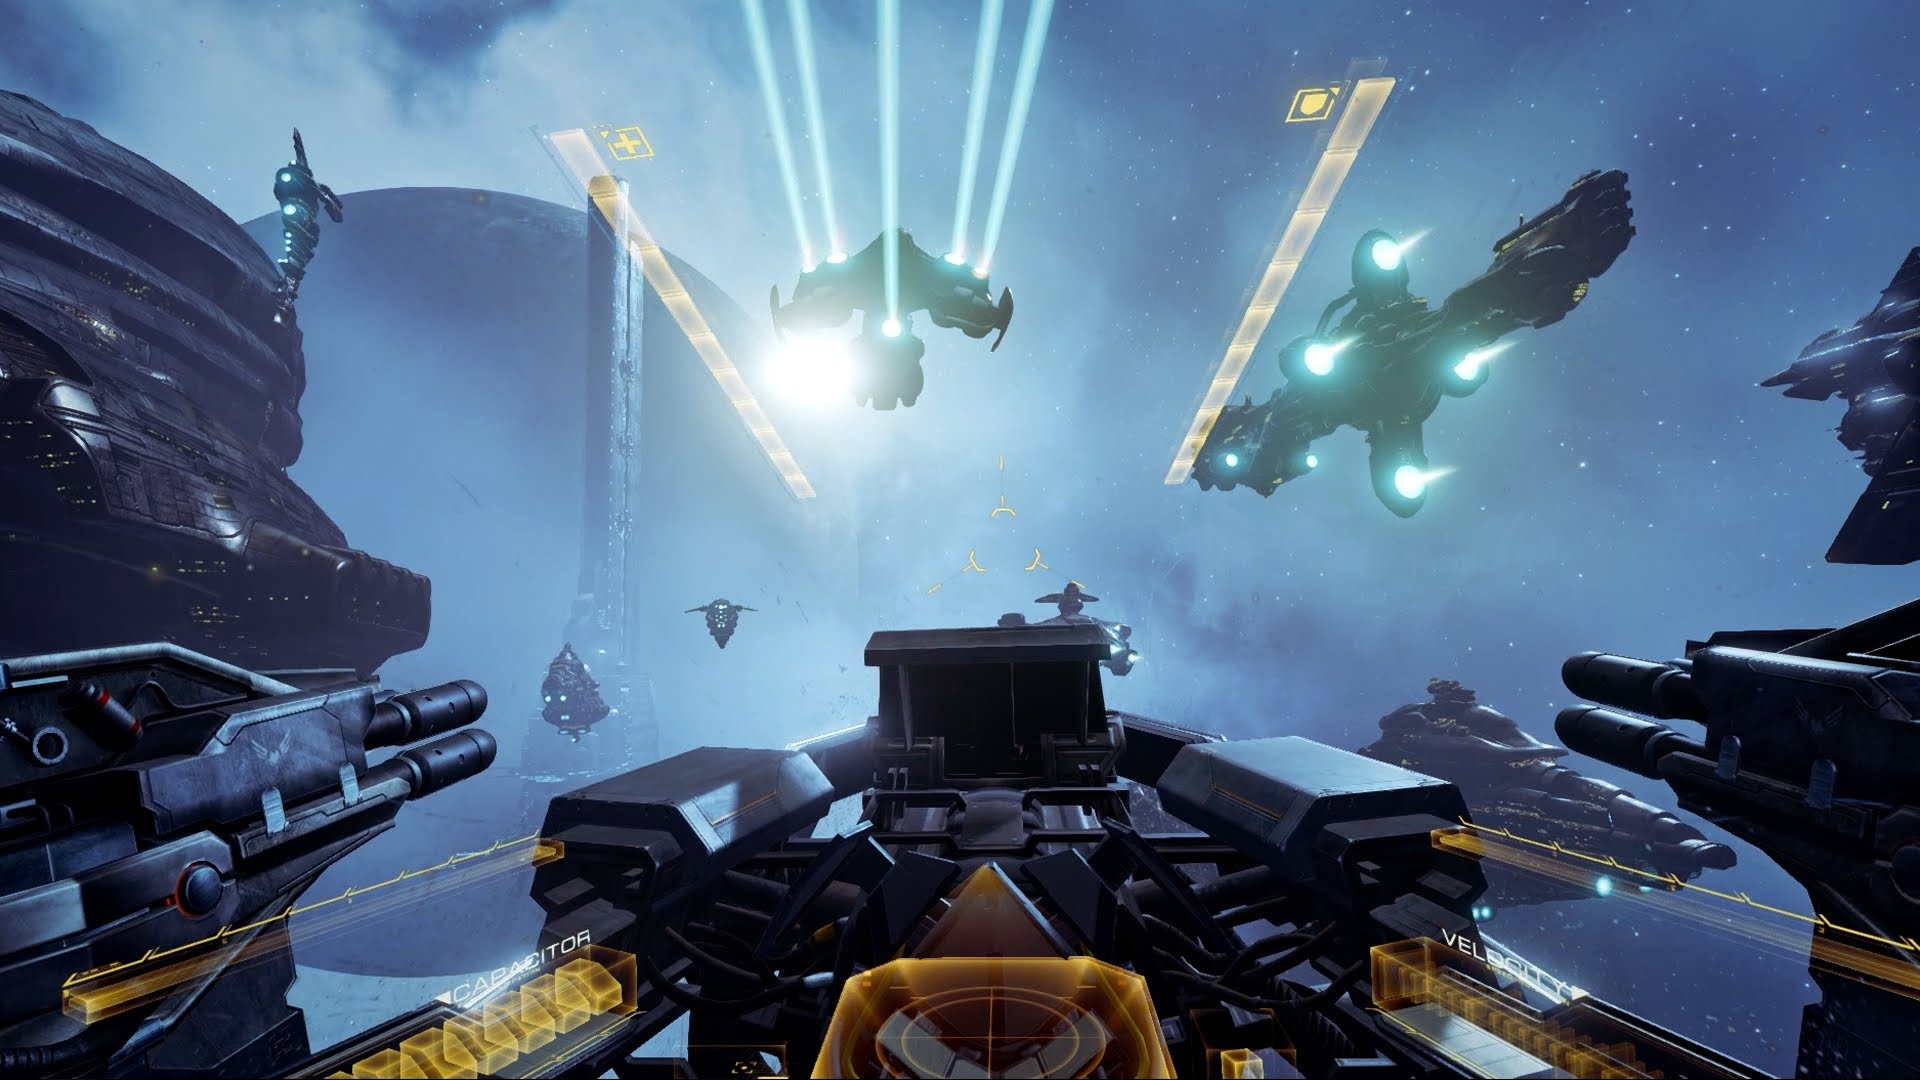 CCP Games will launch 'Eve: Valkyrie' virtual reality space combat game for Oculus Rift and PlayStation VR in 2016.